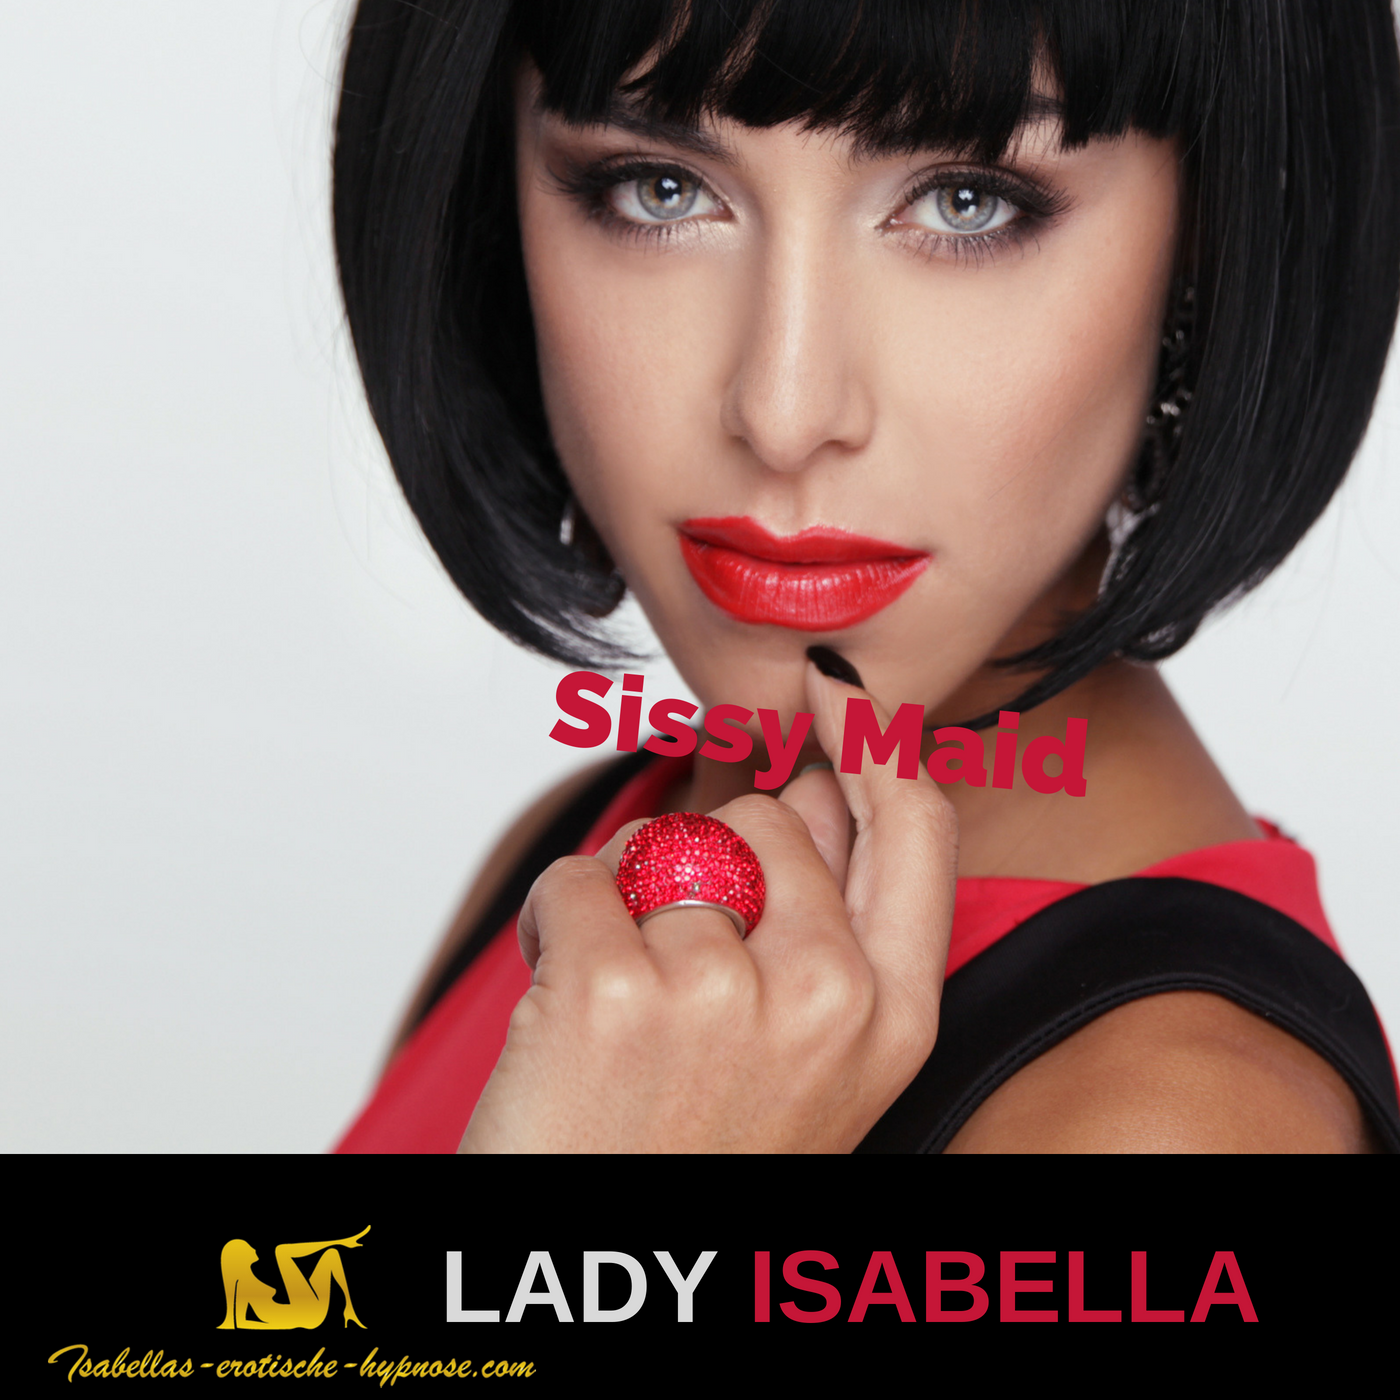 Sissy Maid by Lady Isabella Special Price